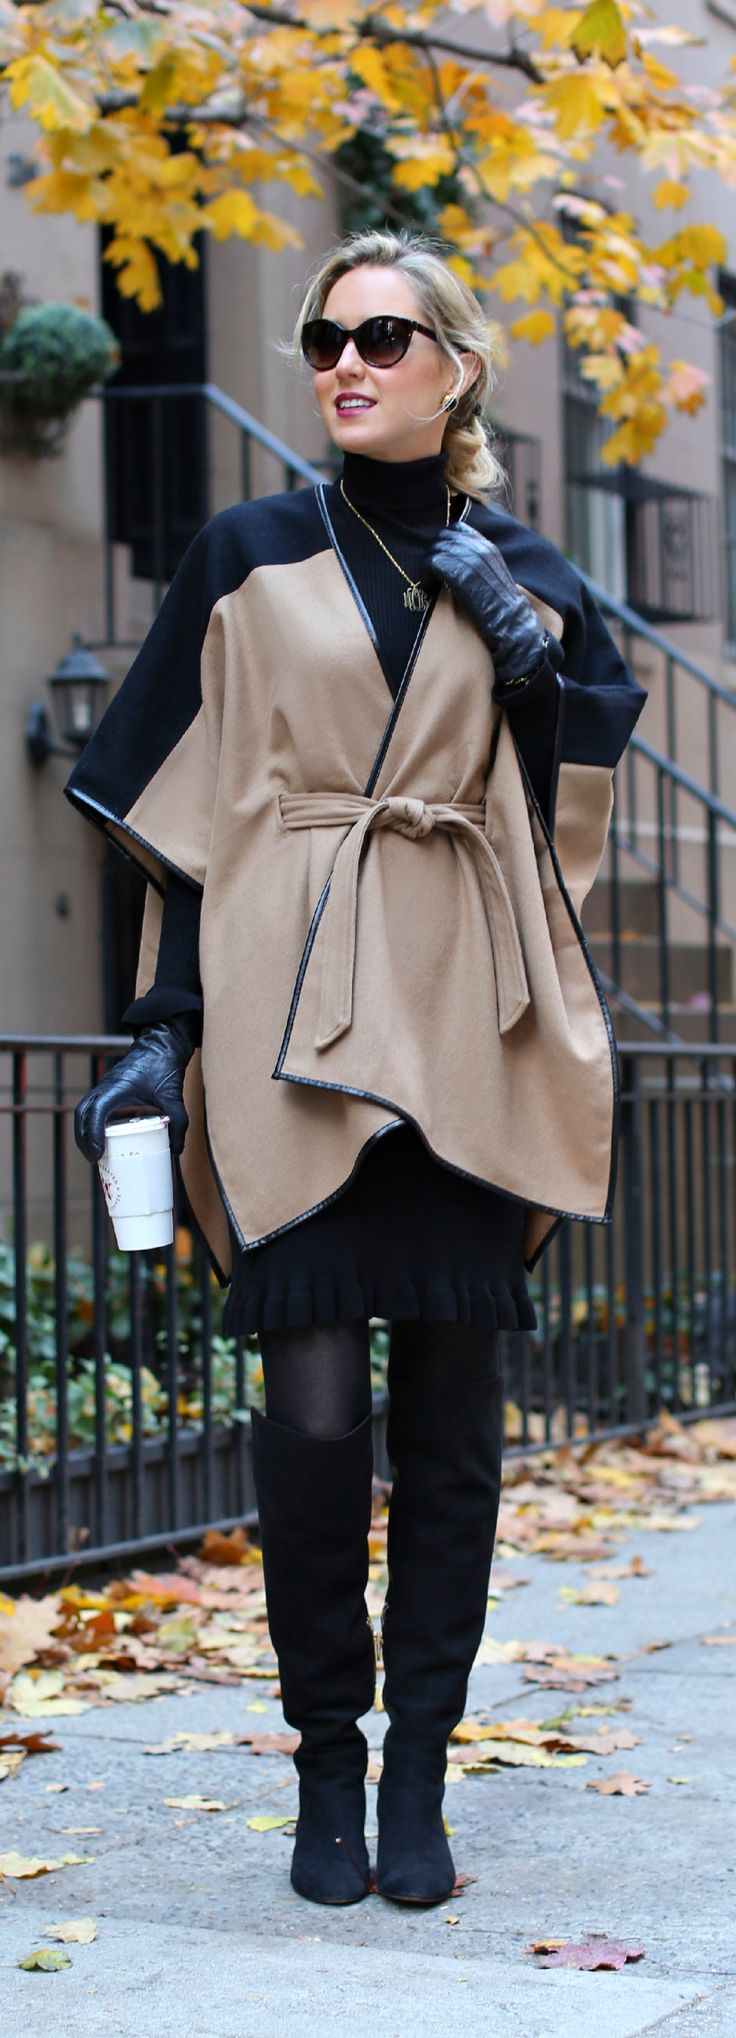 The Classy Cubicle: Caped {ann taylor, michael kors, ralph lauren, work wear, women's, corporate fashion, office style, over the knee boots, turtleneck sweater dress, cat eye sunglasses}